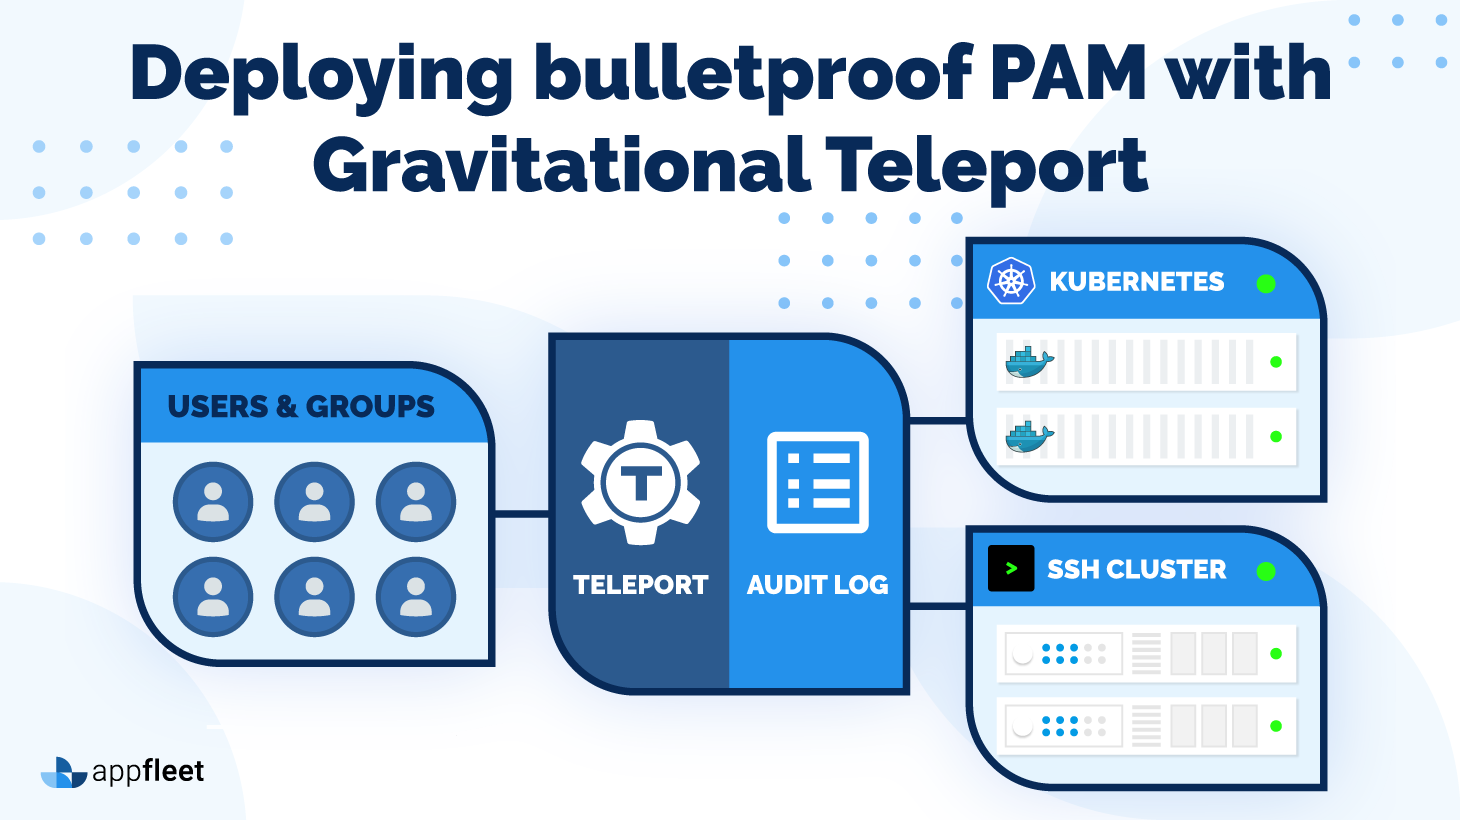 Deploying bulletproof PAM with Gravitational Teleport